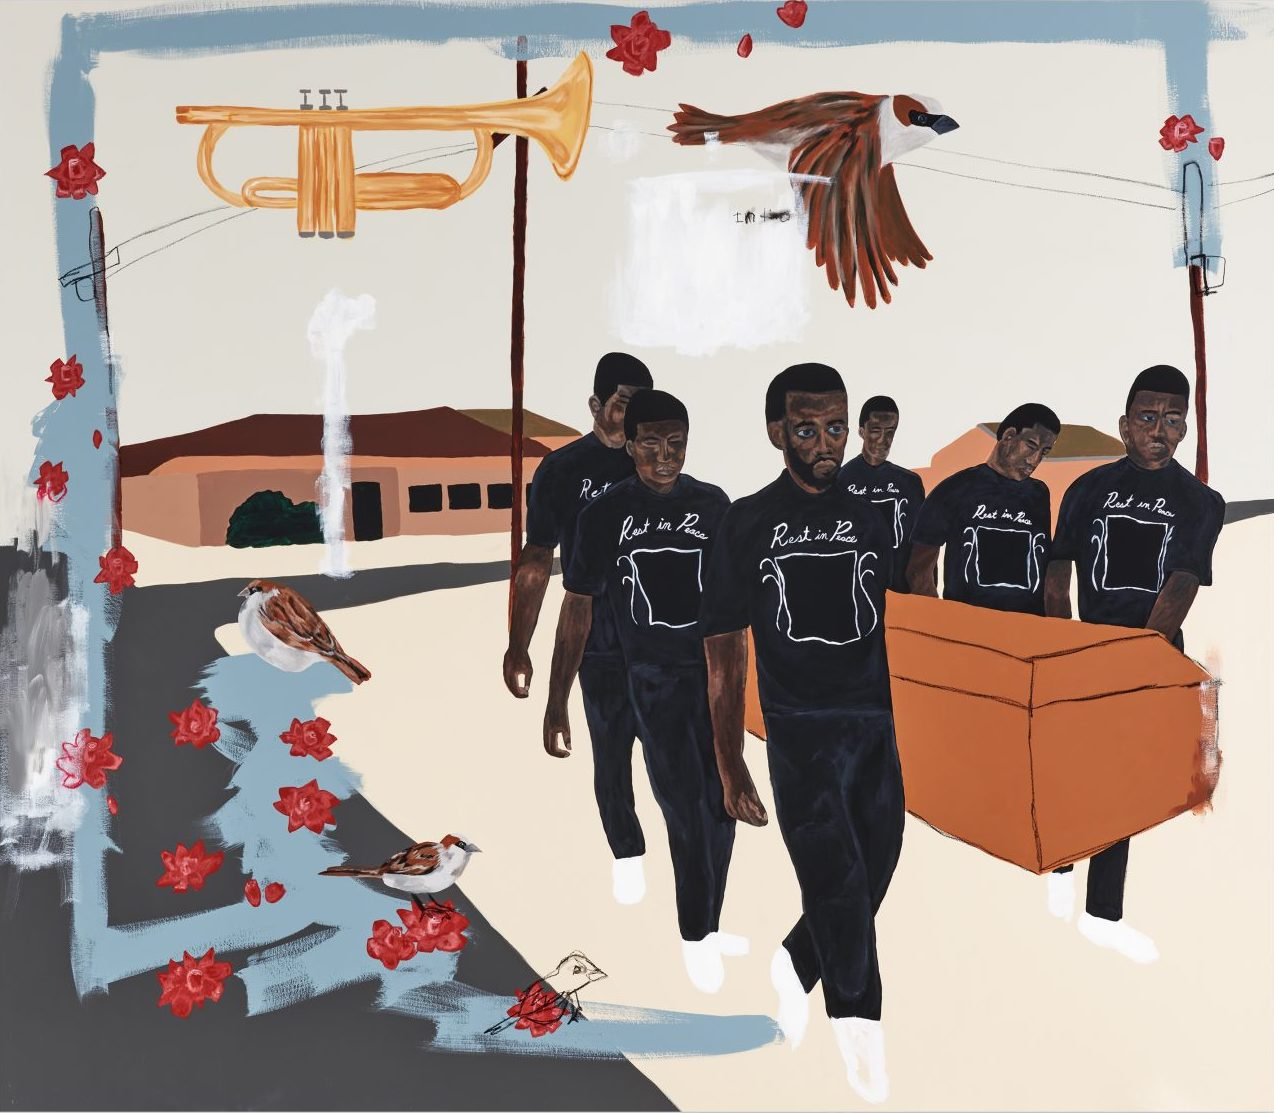 Jammie Holmes, Carrying Caskets #1, 2021. © Jammie Holmes. Courtesy the artist and Library Street Collective